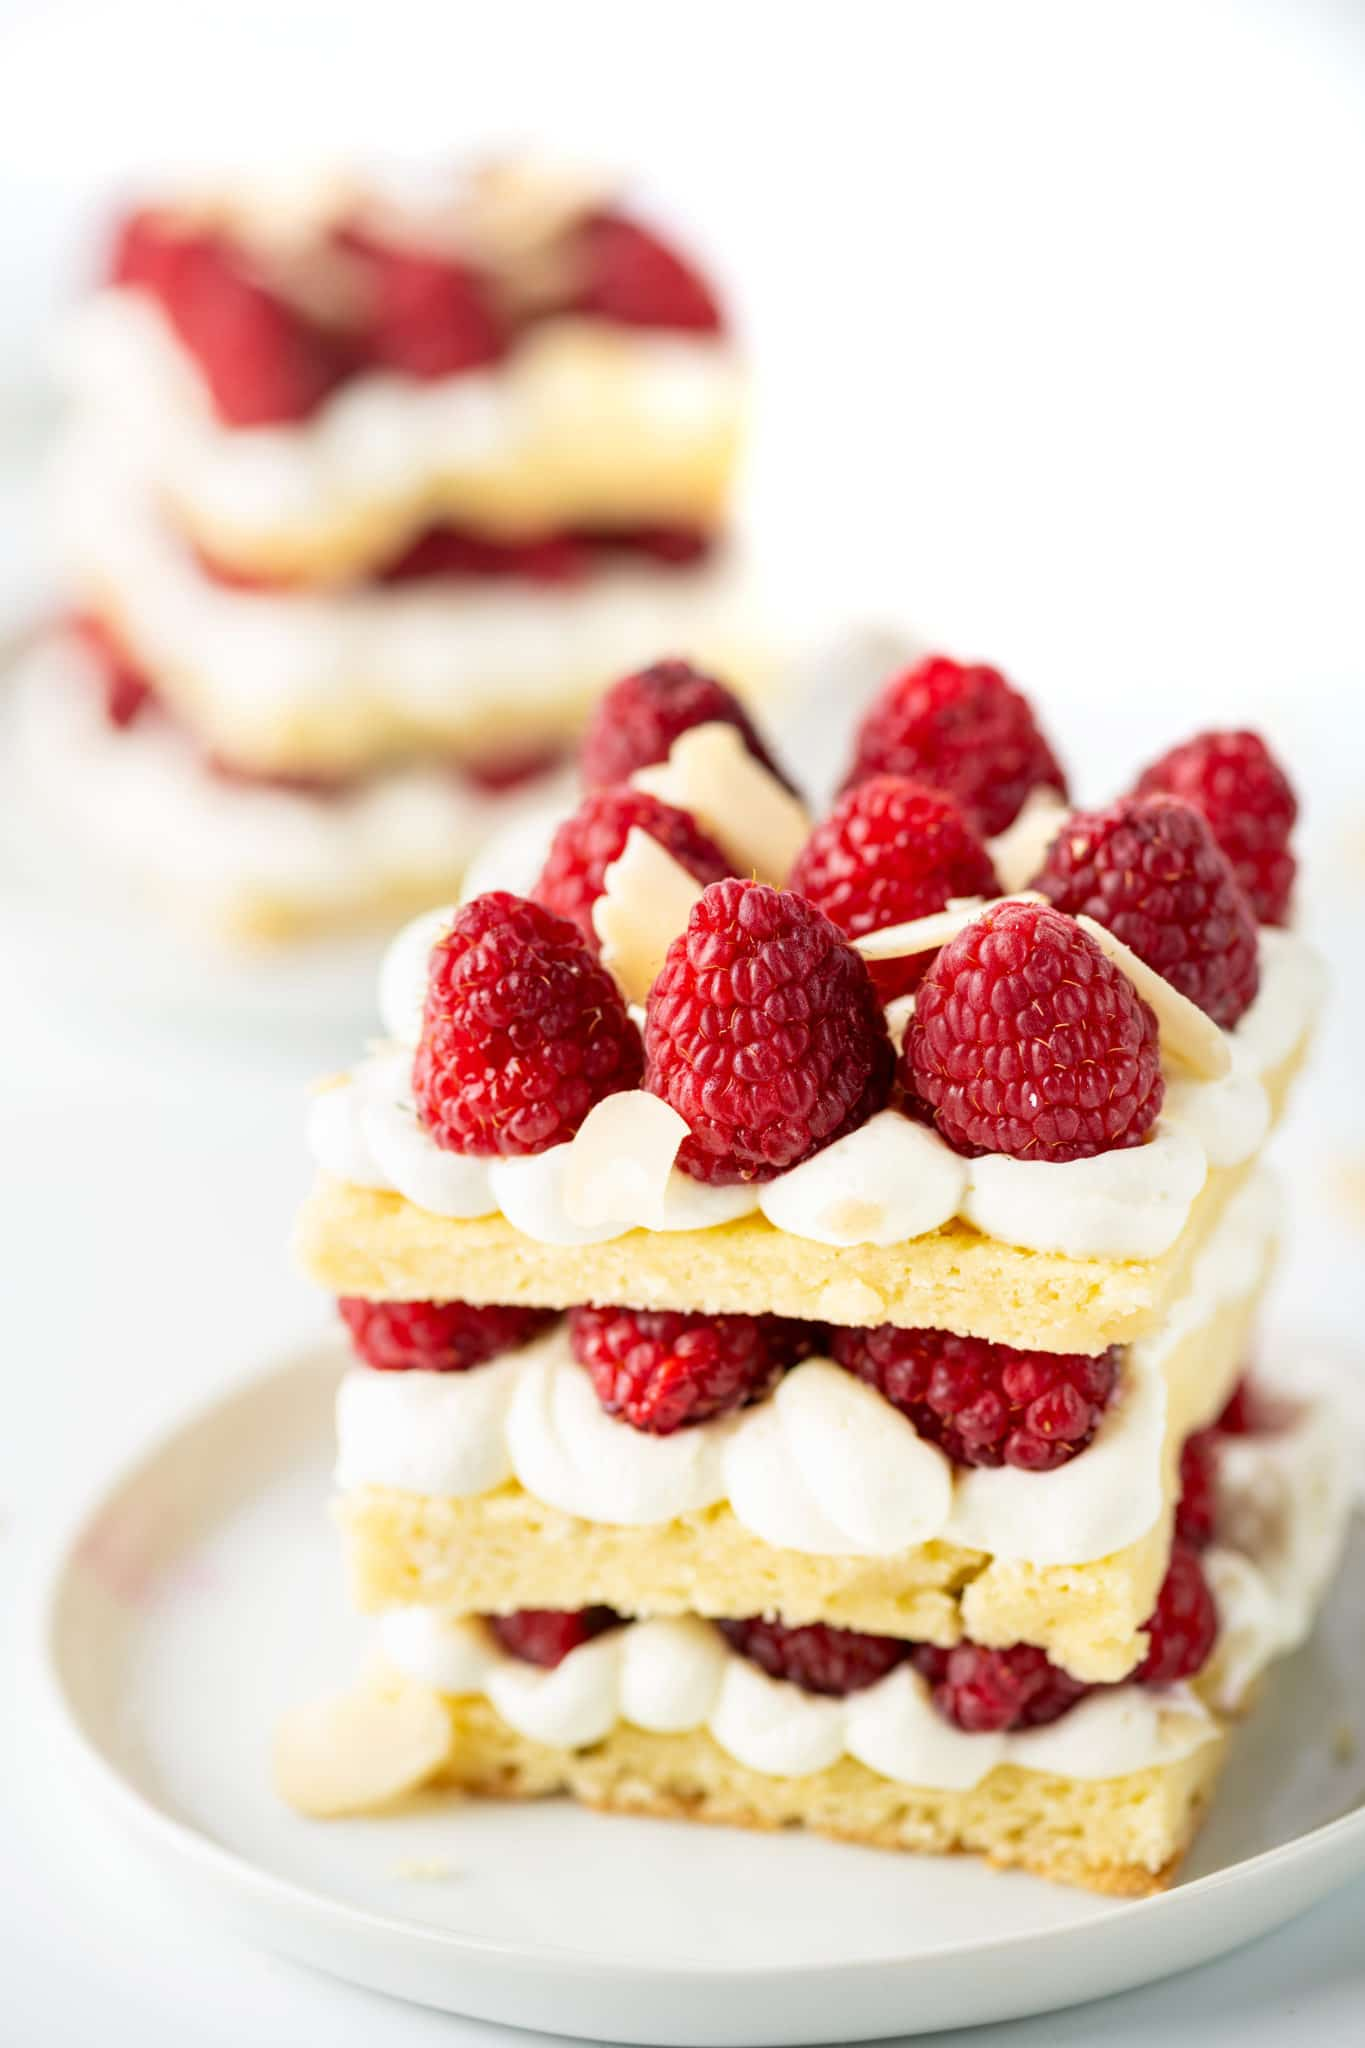 Layered low carb shortcake desserts with raspberries and whipped cream against a bright white background.